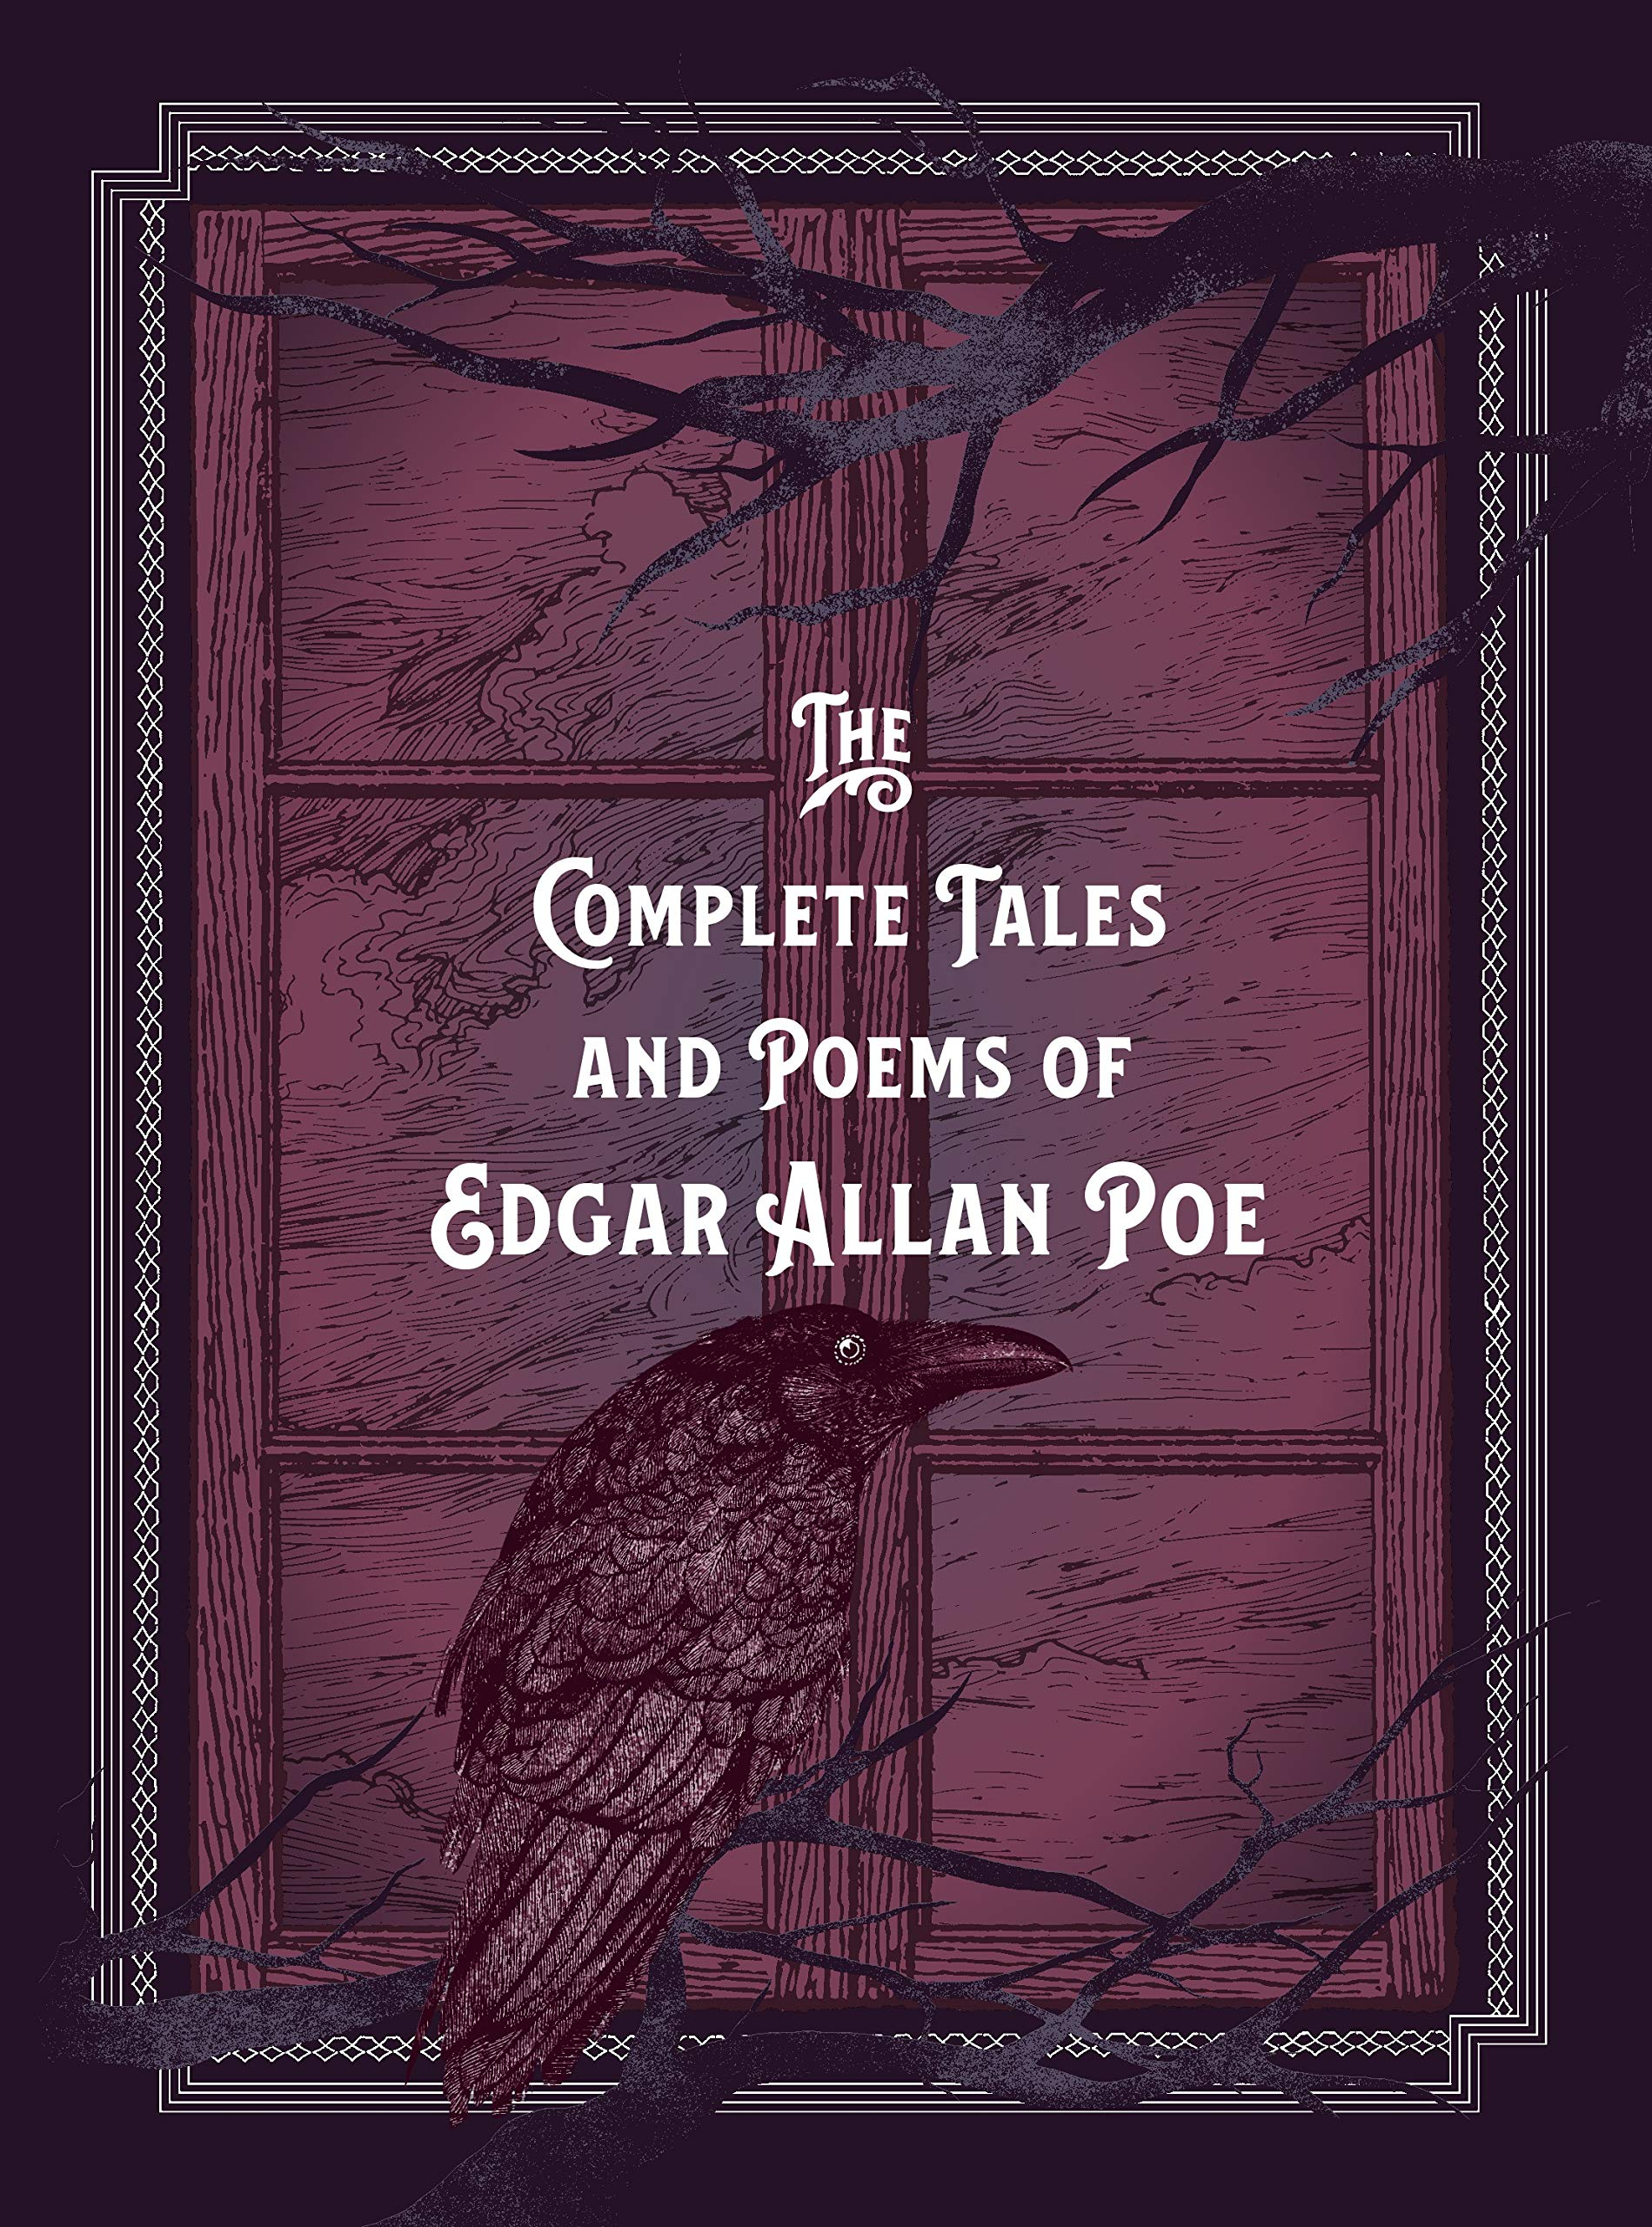 The Complete Tales & Poems of Edgar Allan Poe Book Cover